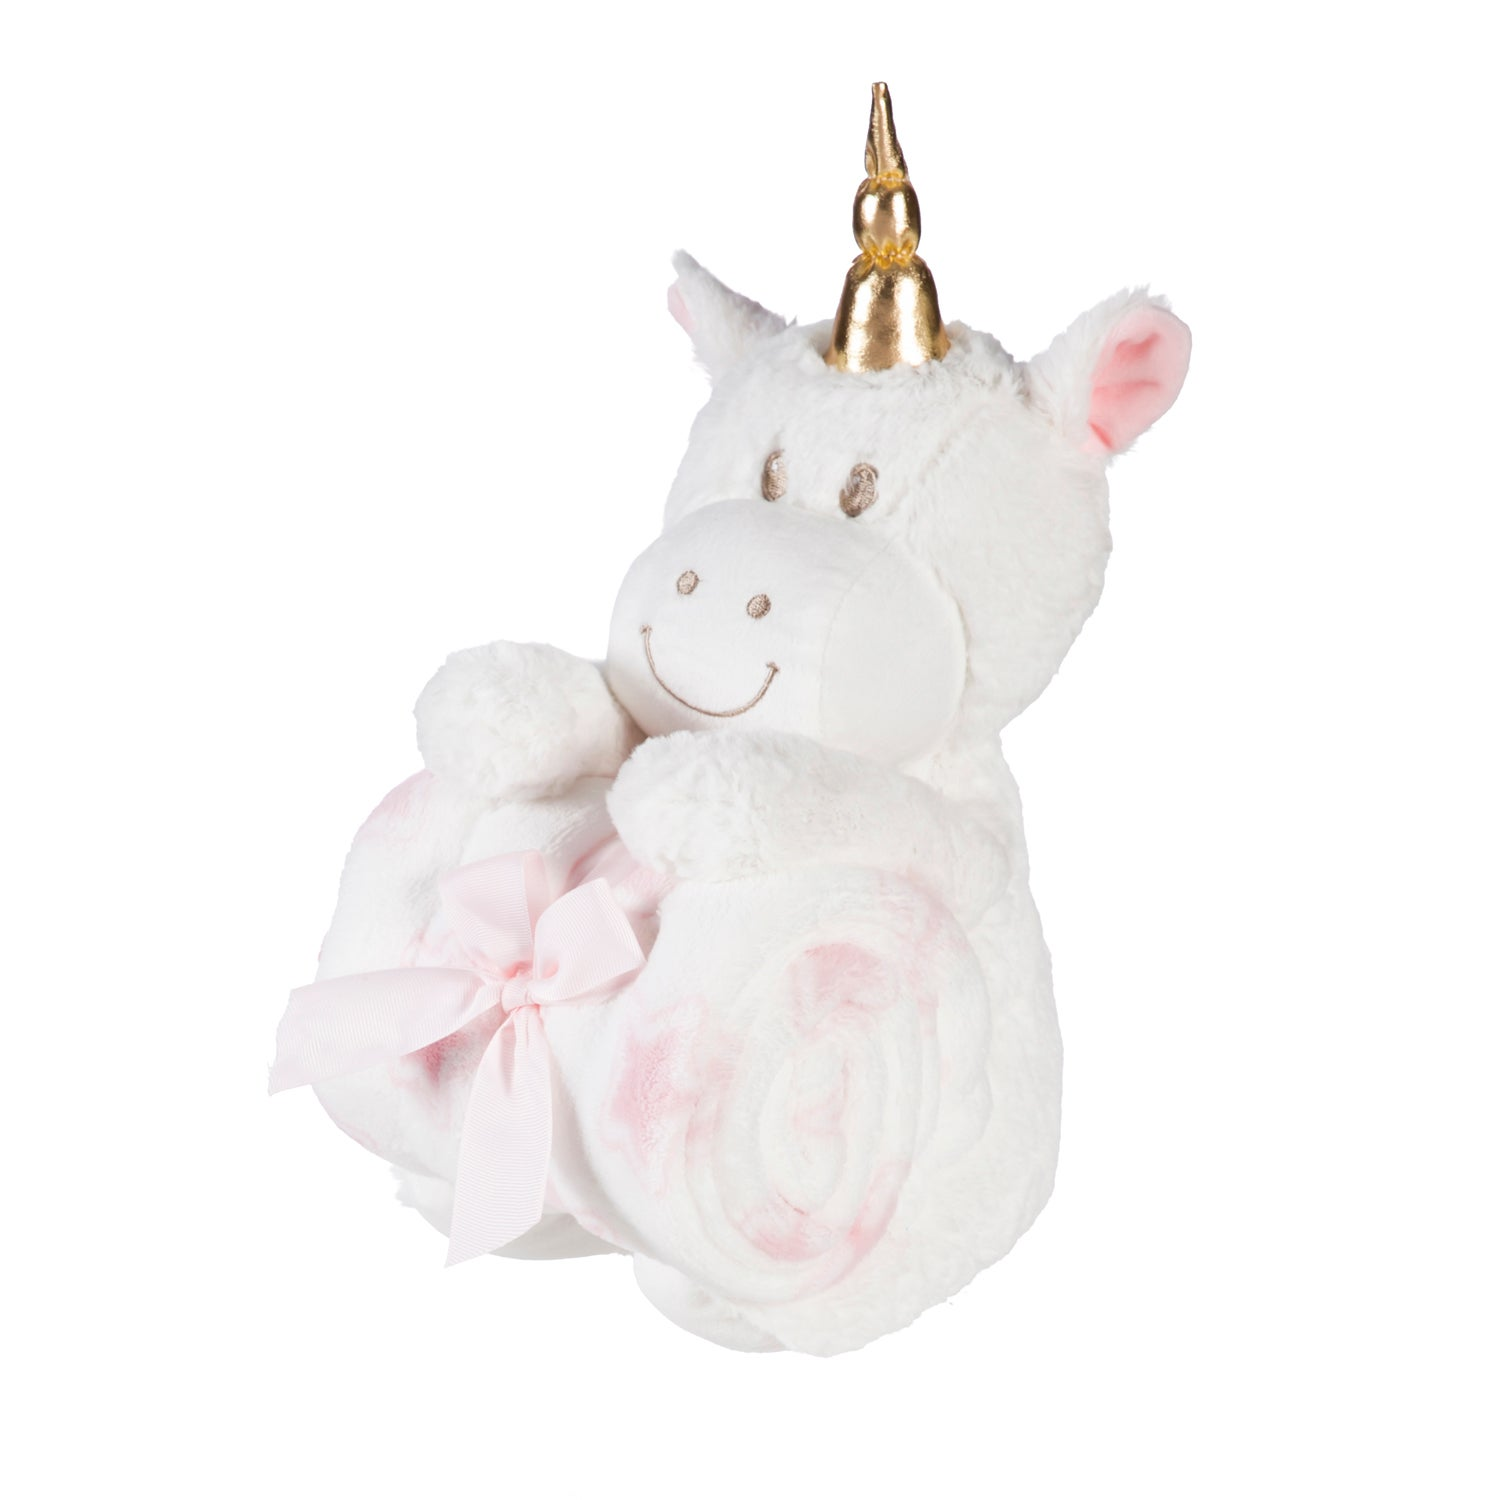 "Cuddly Unicorn 10"" Stuffed Animal w/ Blanket Gift Set, White"